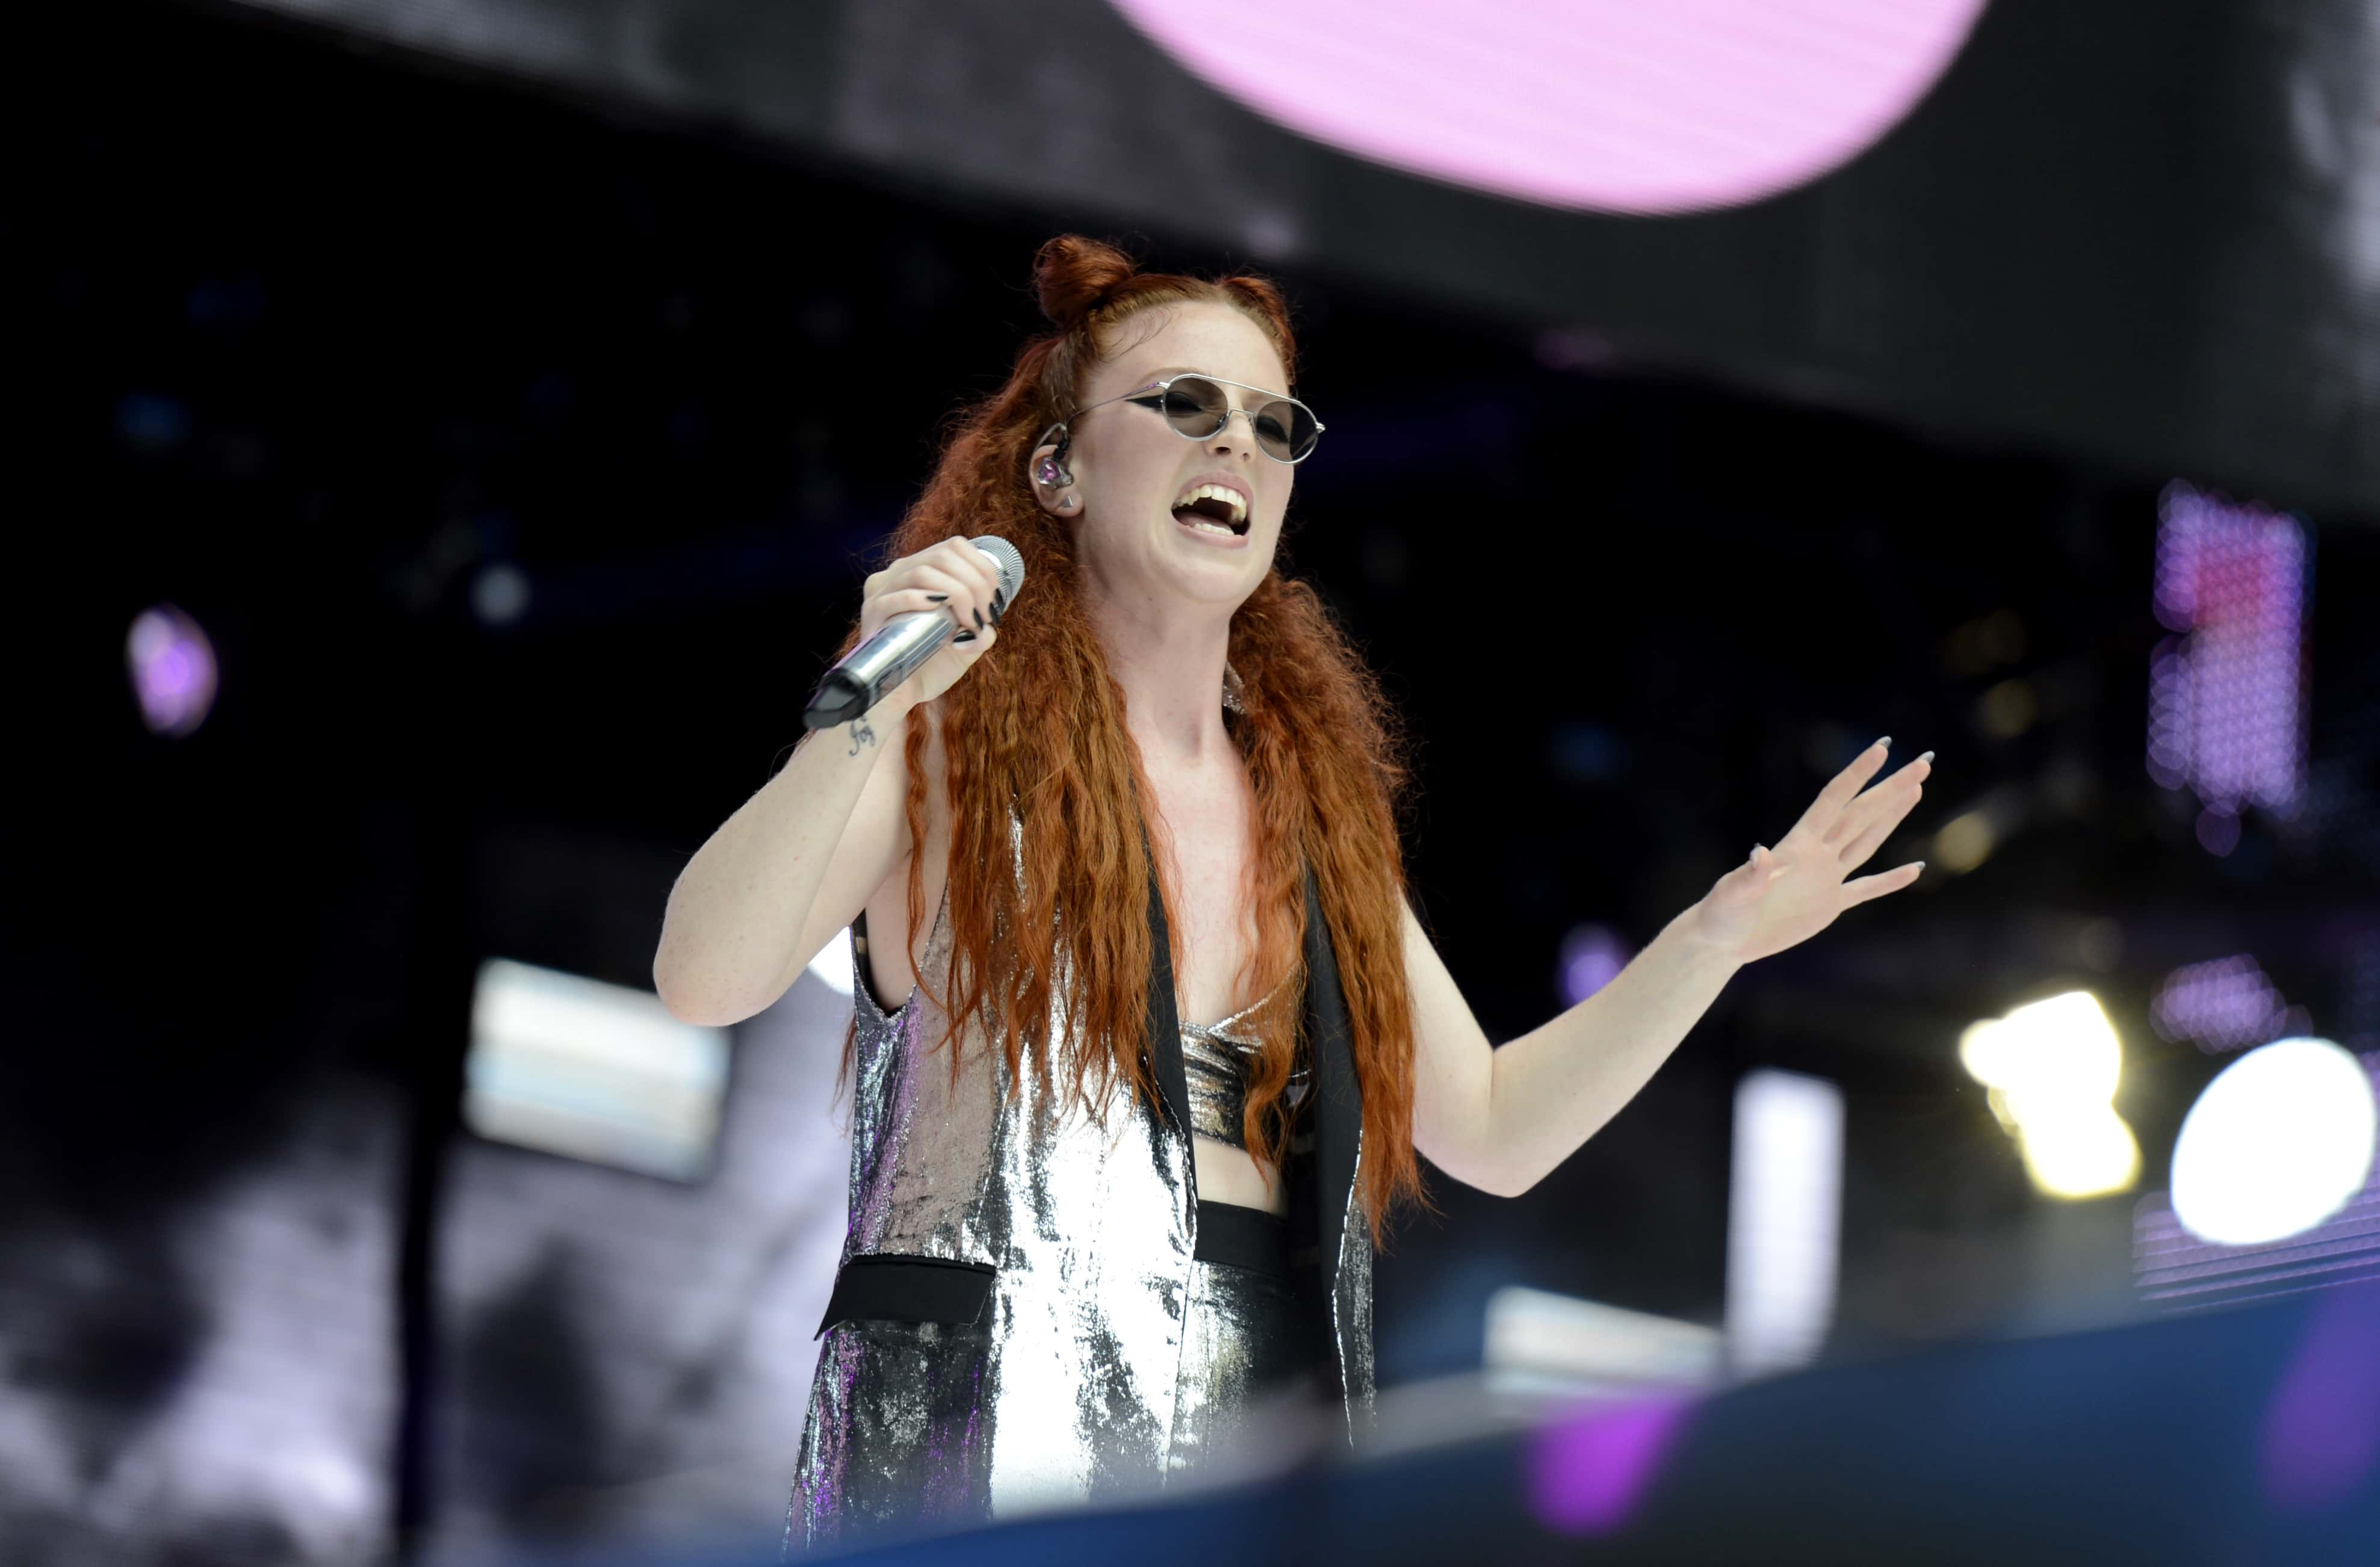 Jess Glynne performing at thw weekend in London. Photo: Ryan Phillips/PA Wire